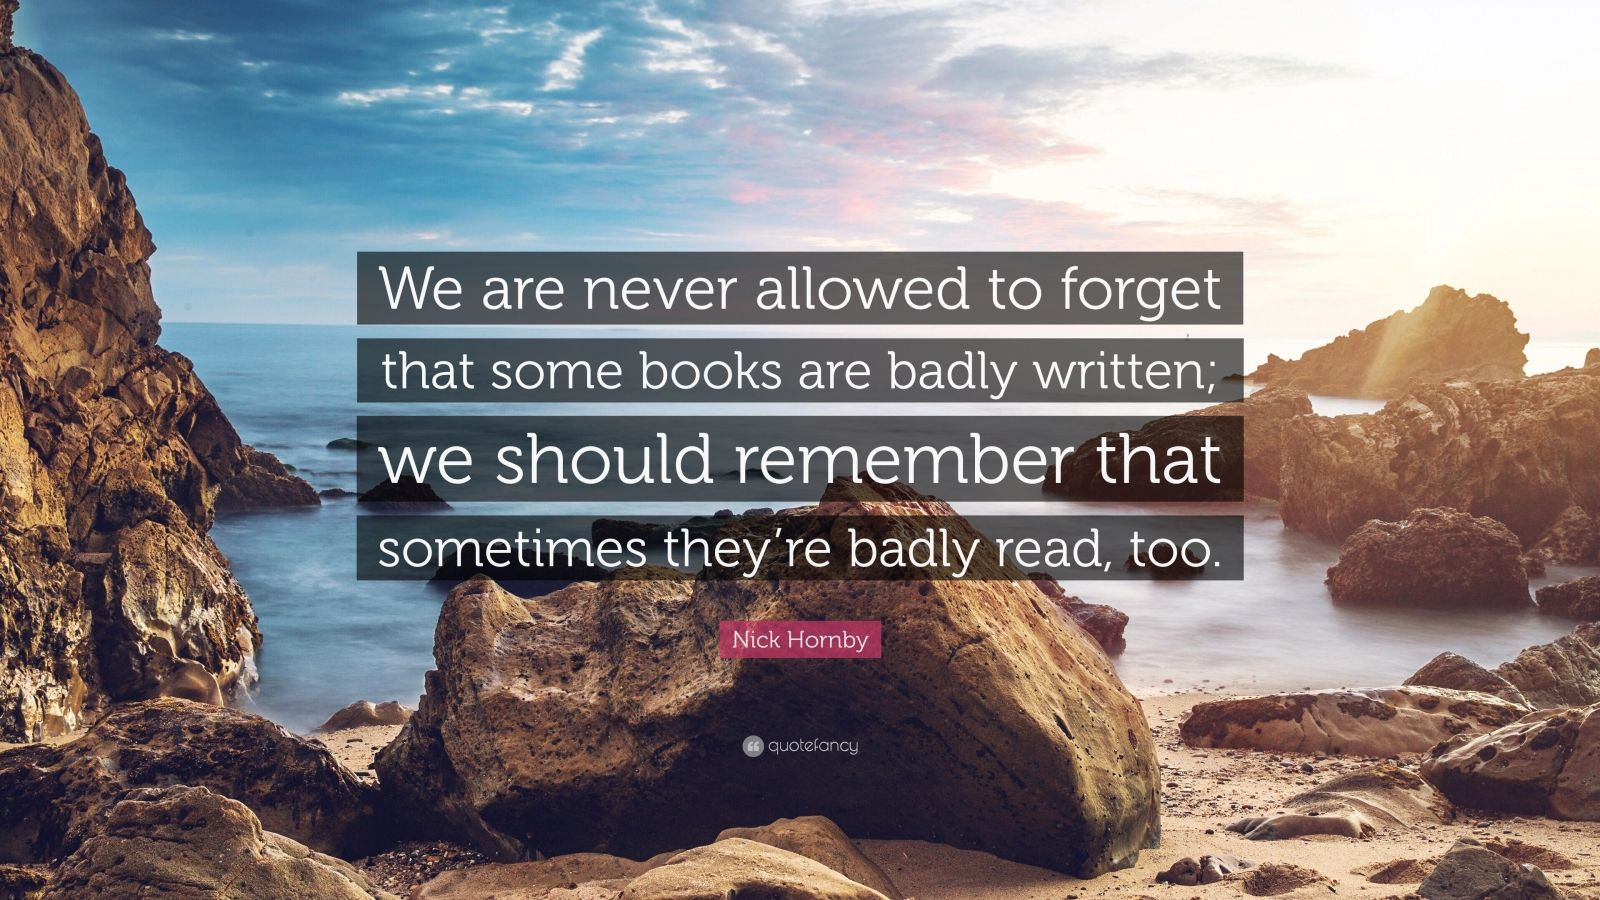 """Nick Hornby Quote: """"We are never allowed to forget that some books are badly written; we should remember that sometimes they're badly read, too."""""""